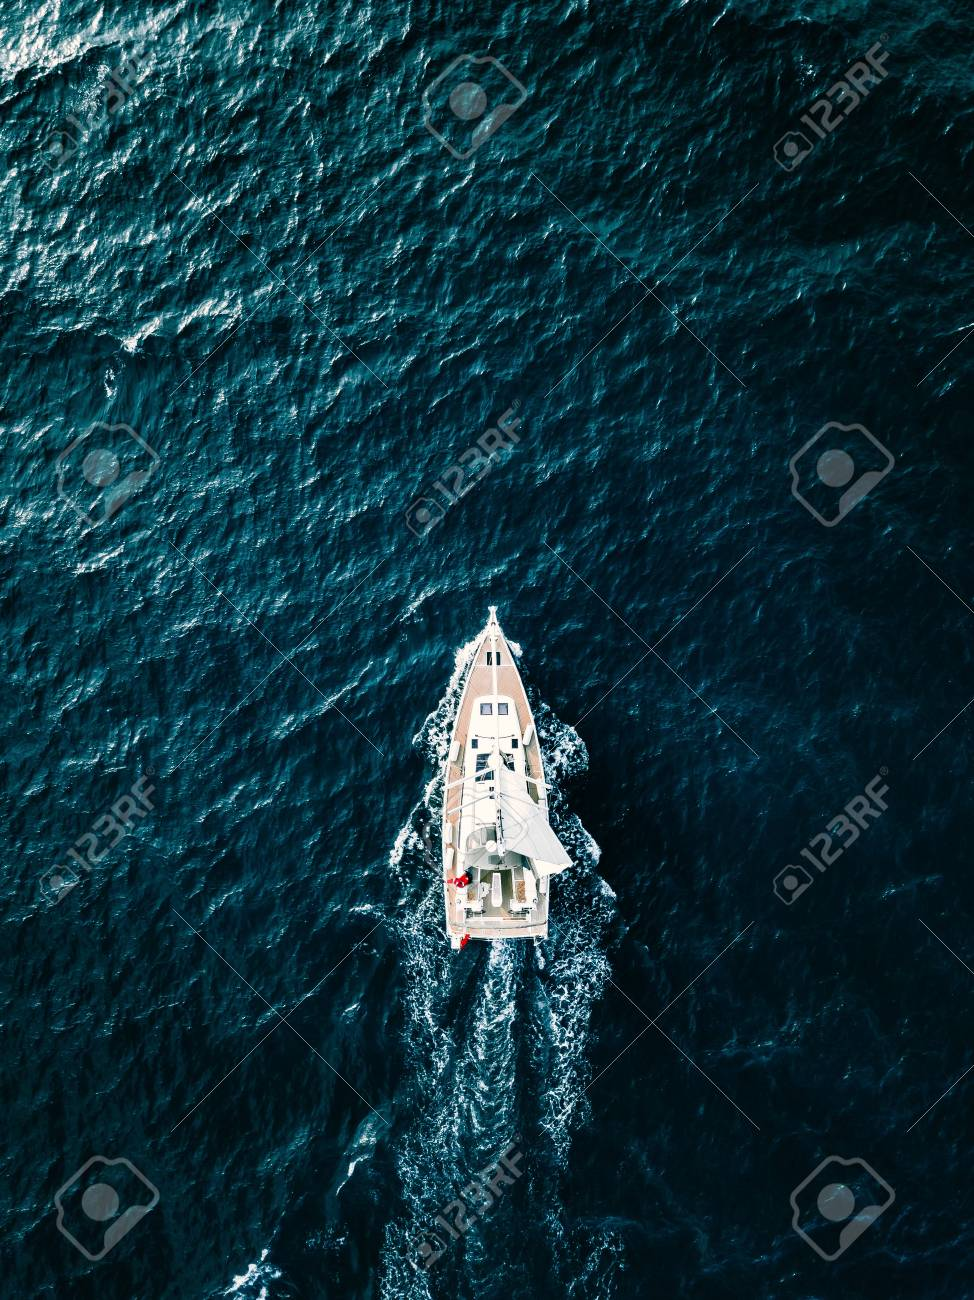 Aerial view of Sailing ship yachts with white sails in windy condition in deep blue sea - 120633157